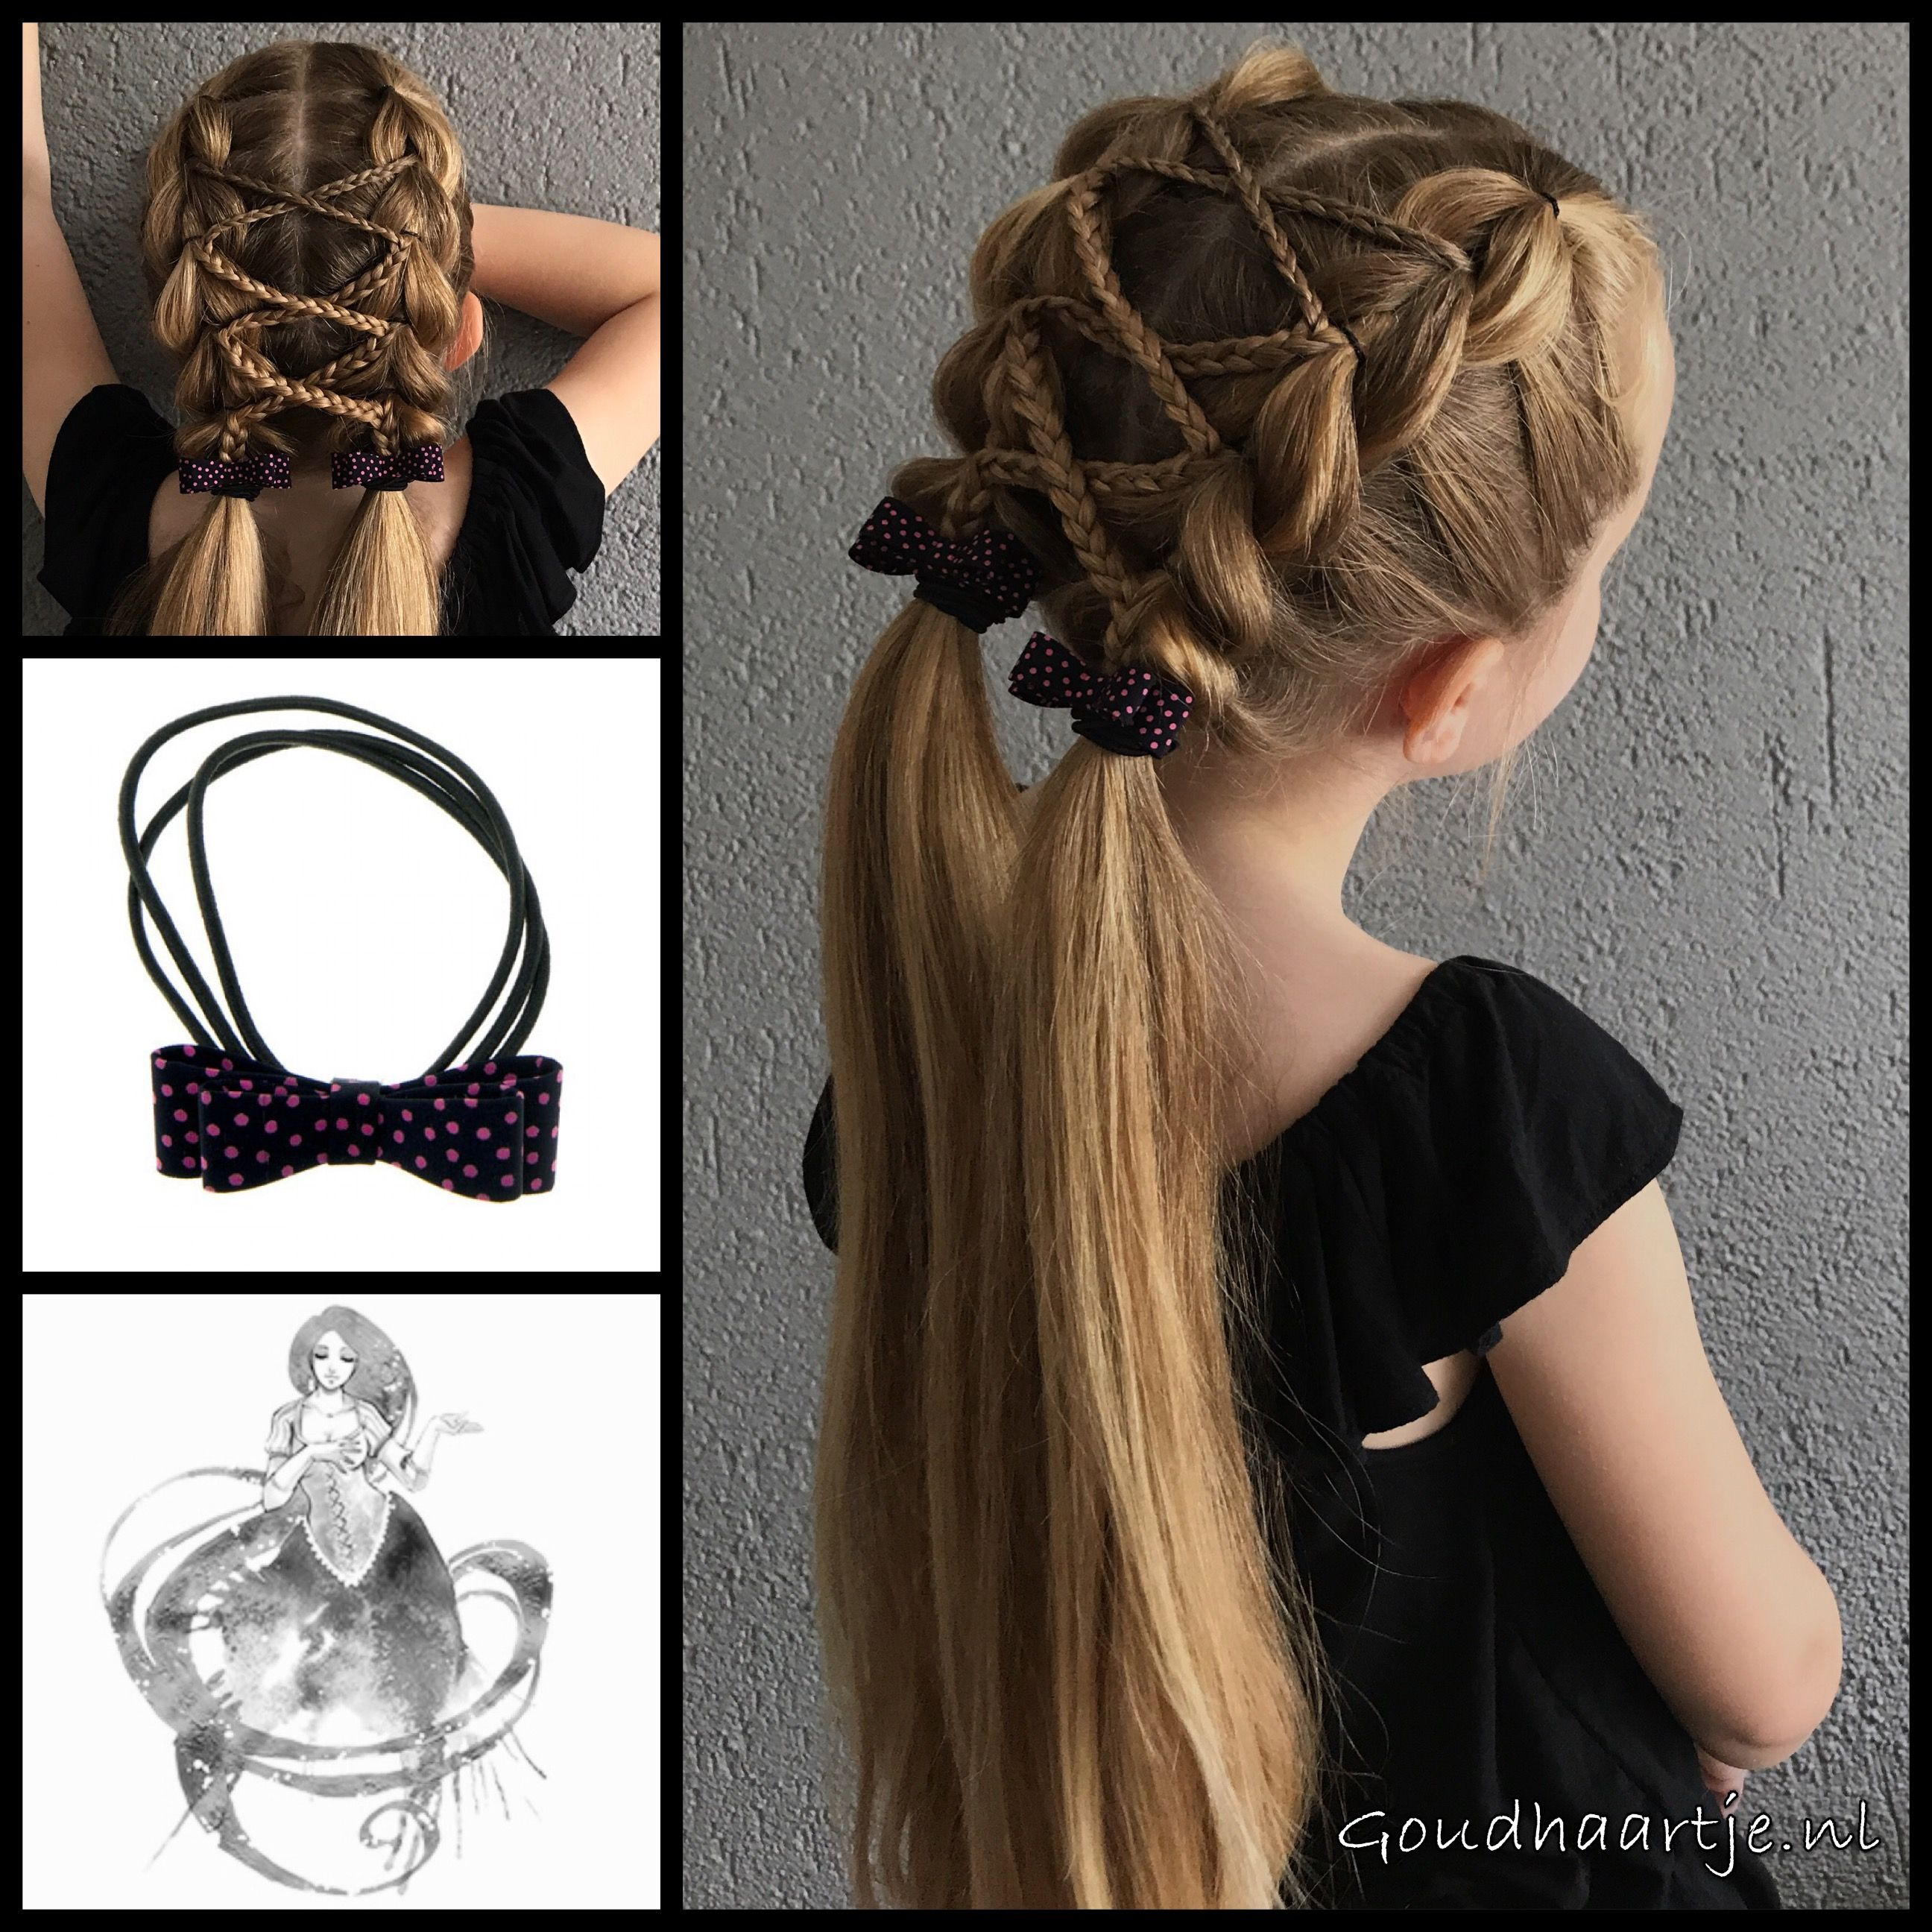 Pull through braids with micro braids into pigtails with lovely bows